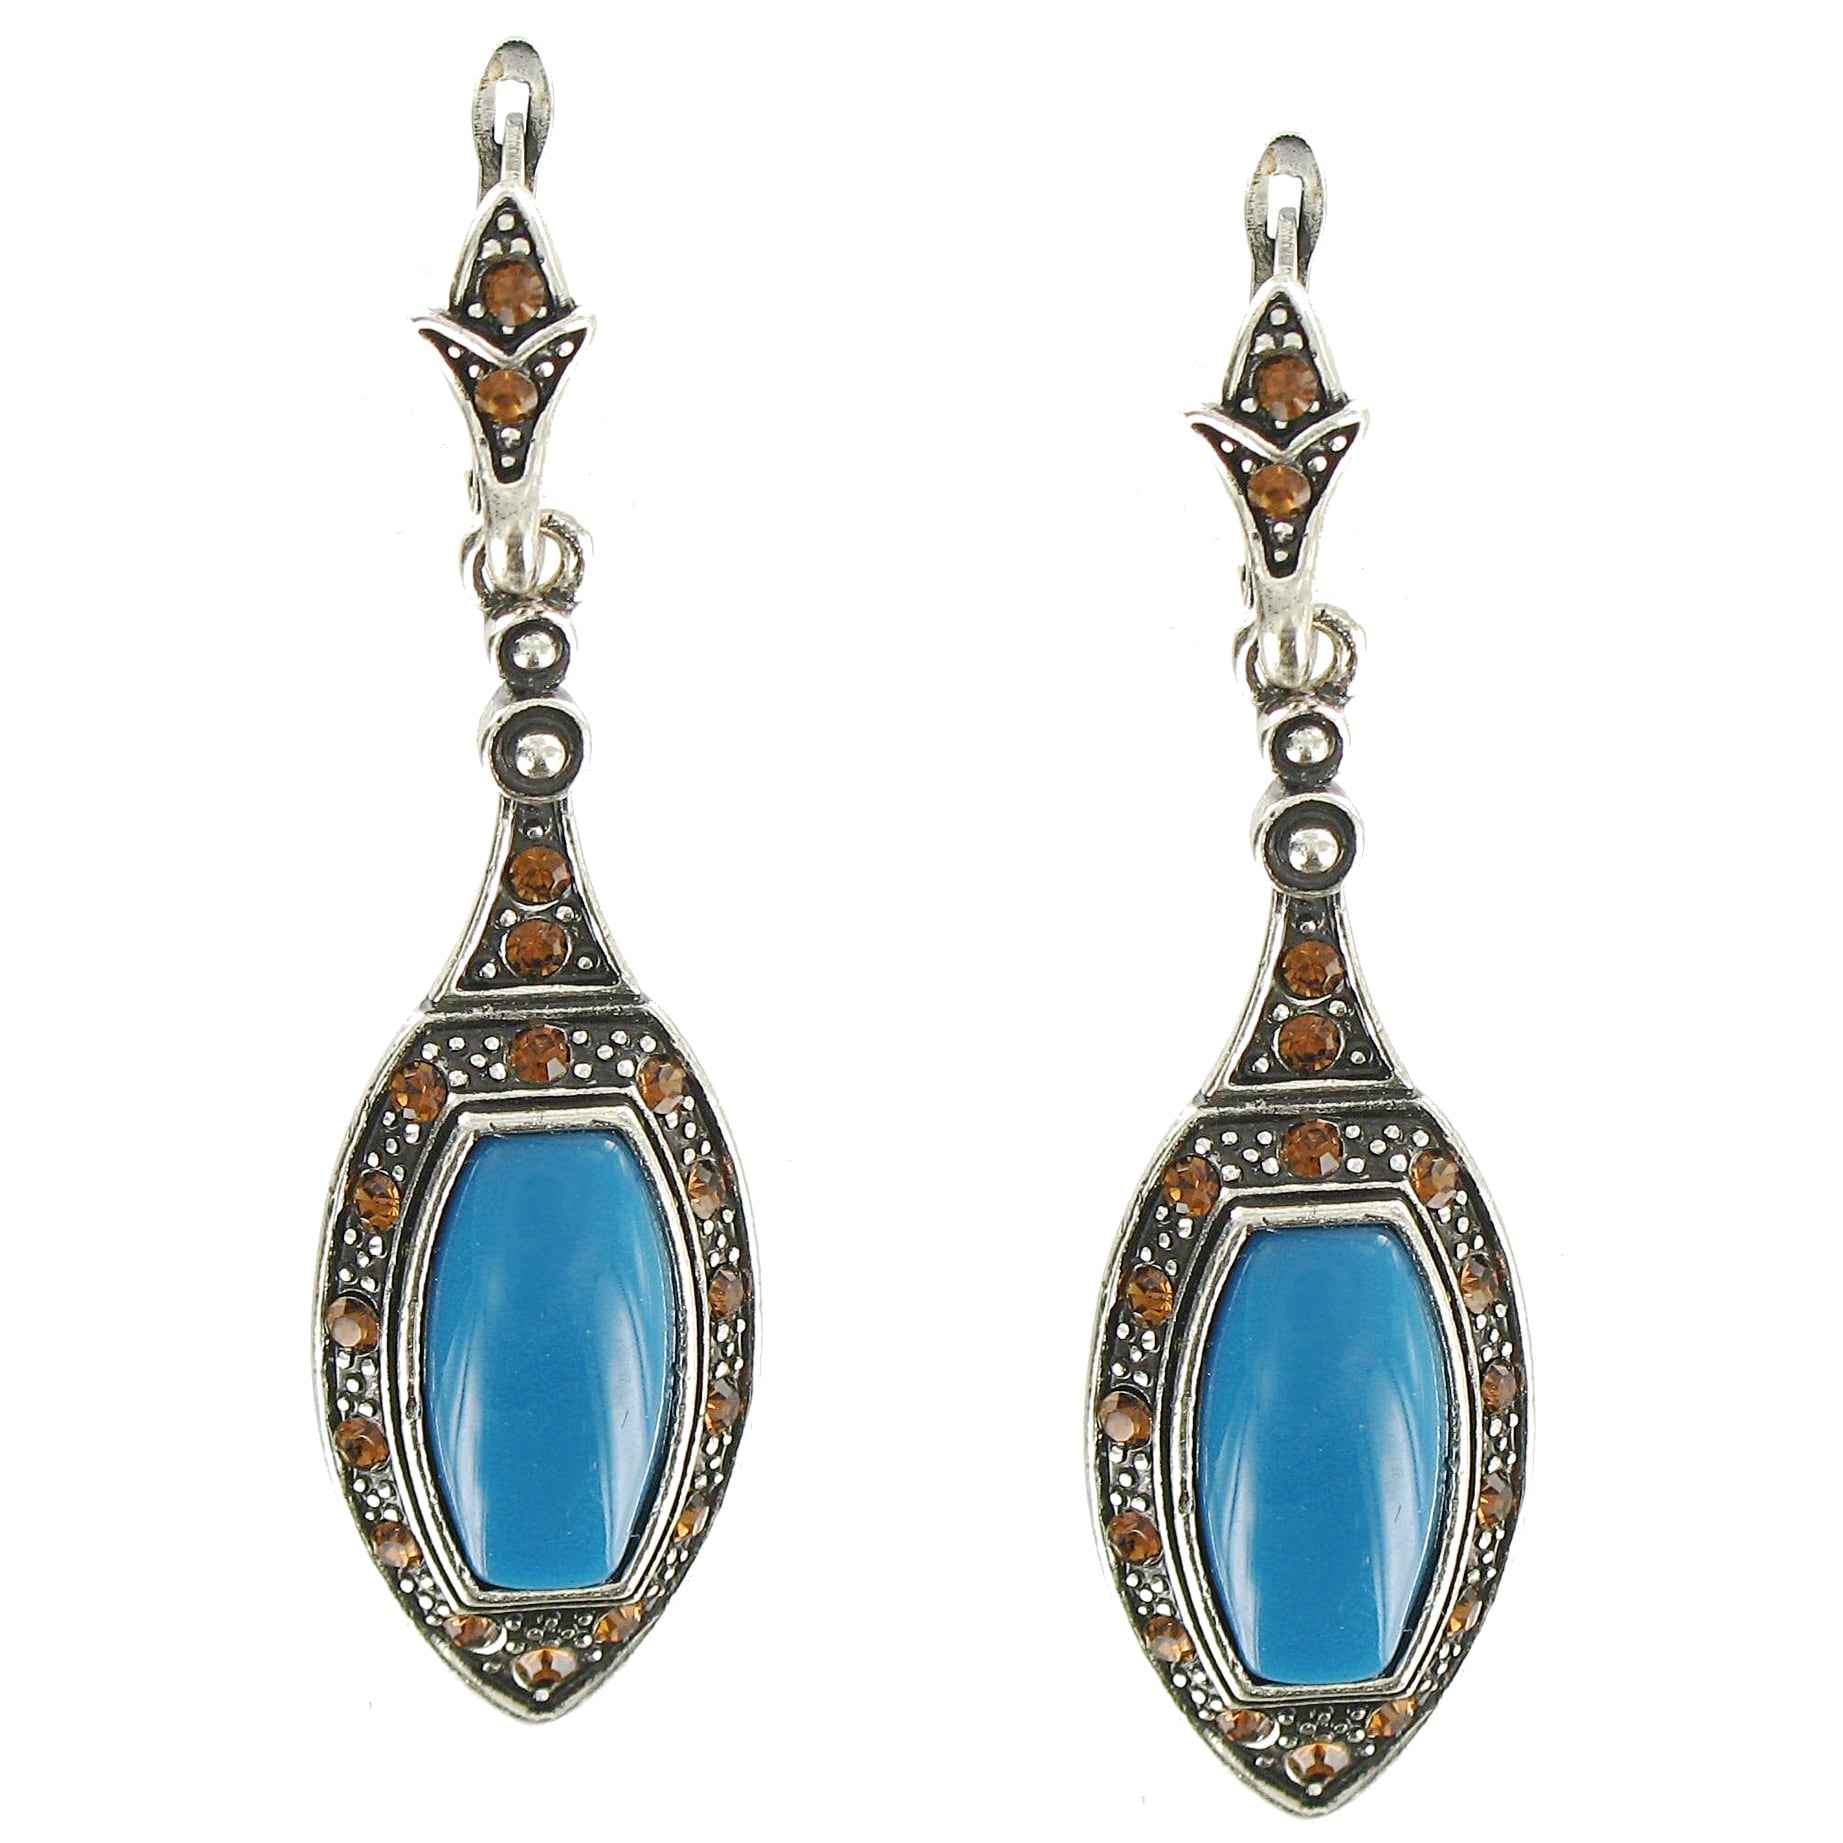 Cano Antiqued Silver-plating Blue Resin Stone Earrings